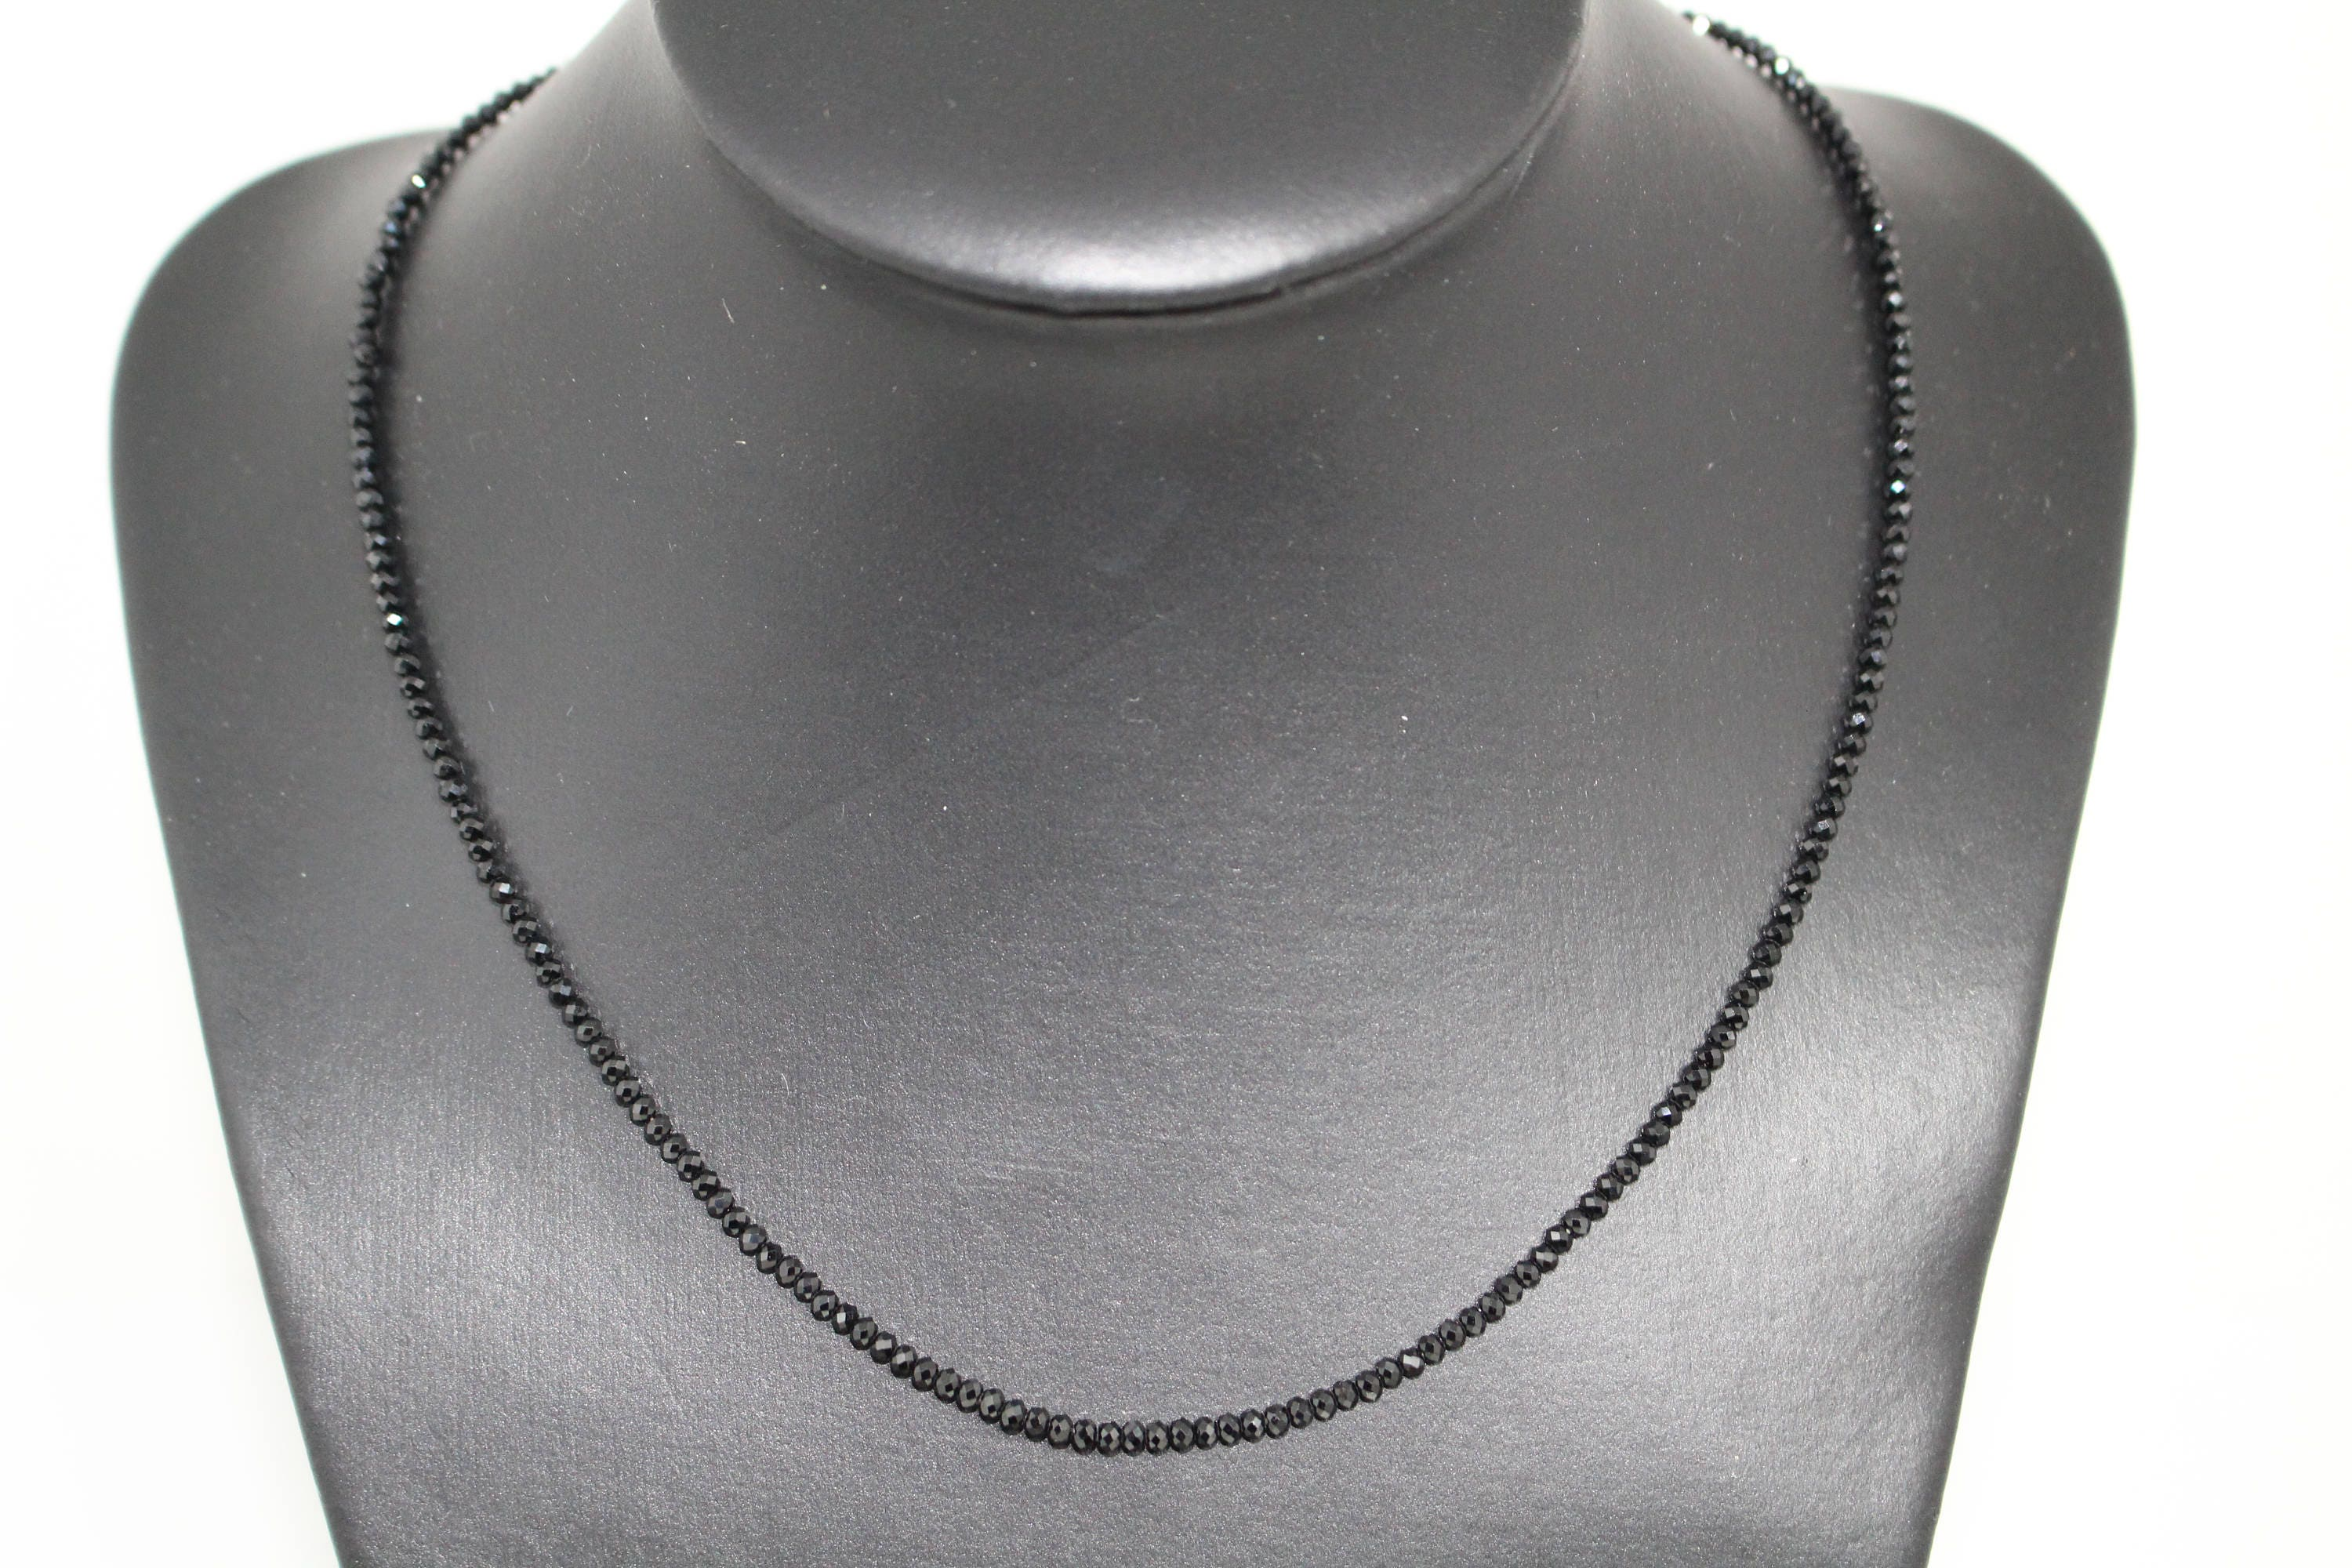 products spin silver spinel black and mens necklace neck pistachios wolb